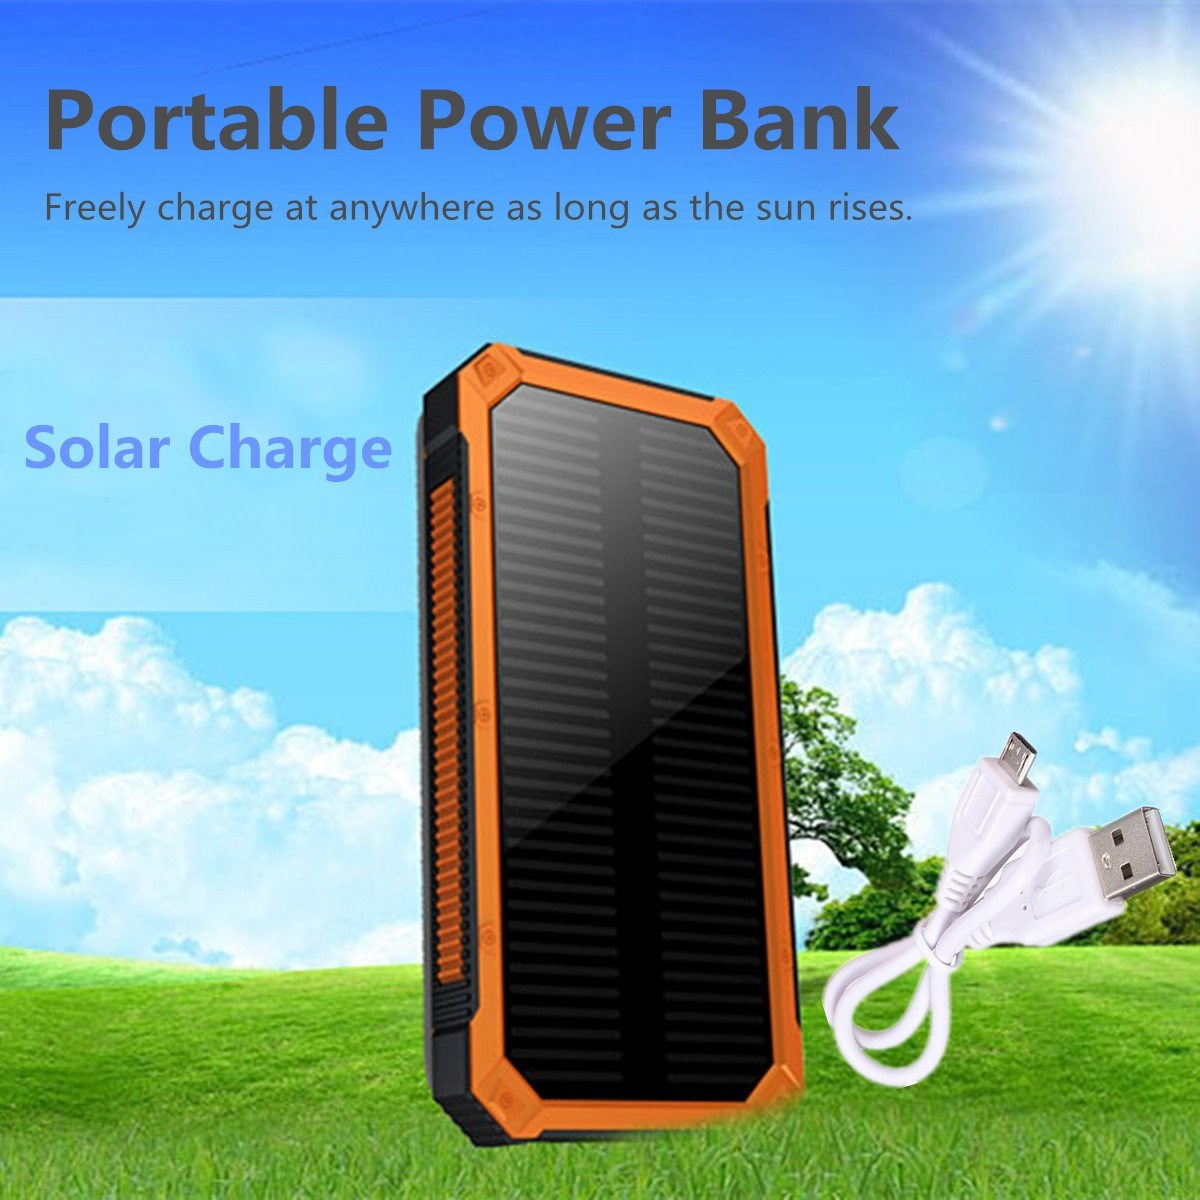 20000mAh Portable Dual USB Port Solar Power Bank External Backup Charger Battery Powerbank Power Supply For iPhone 6 6s 6plus S6